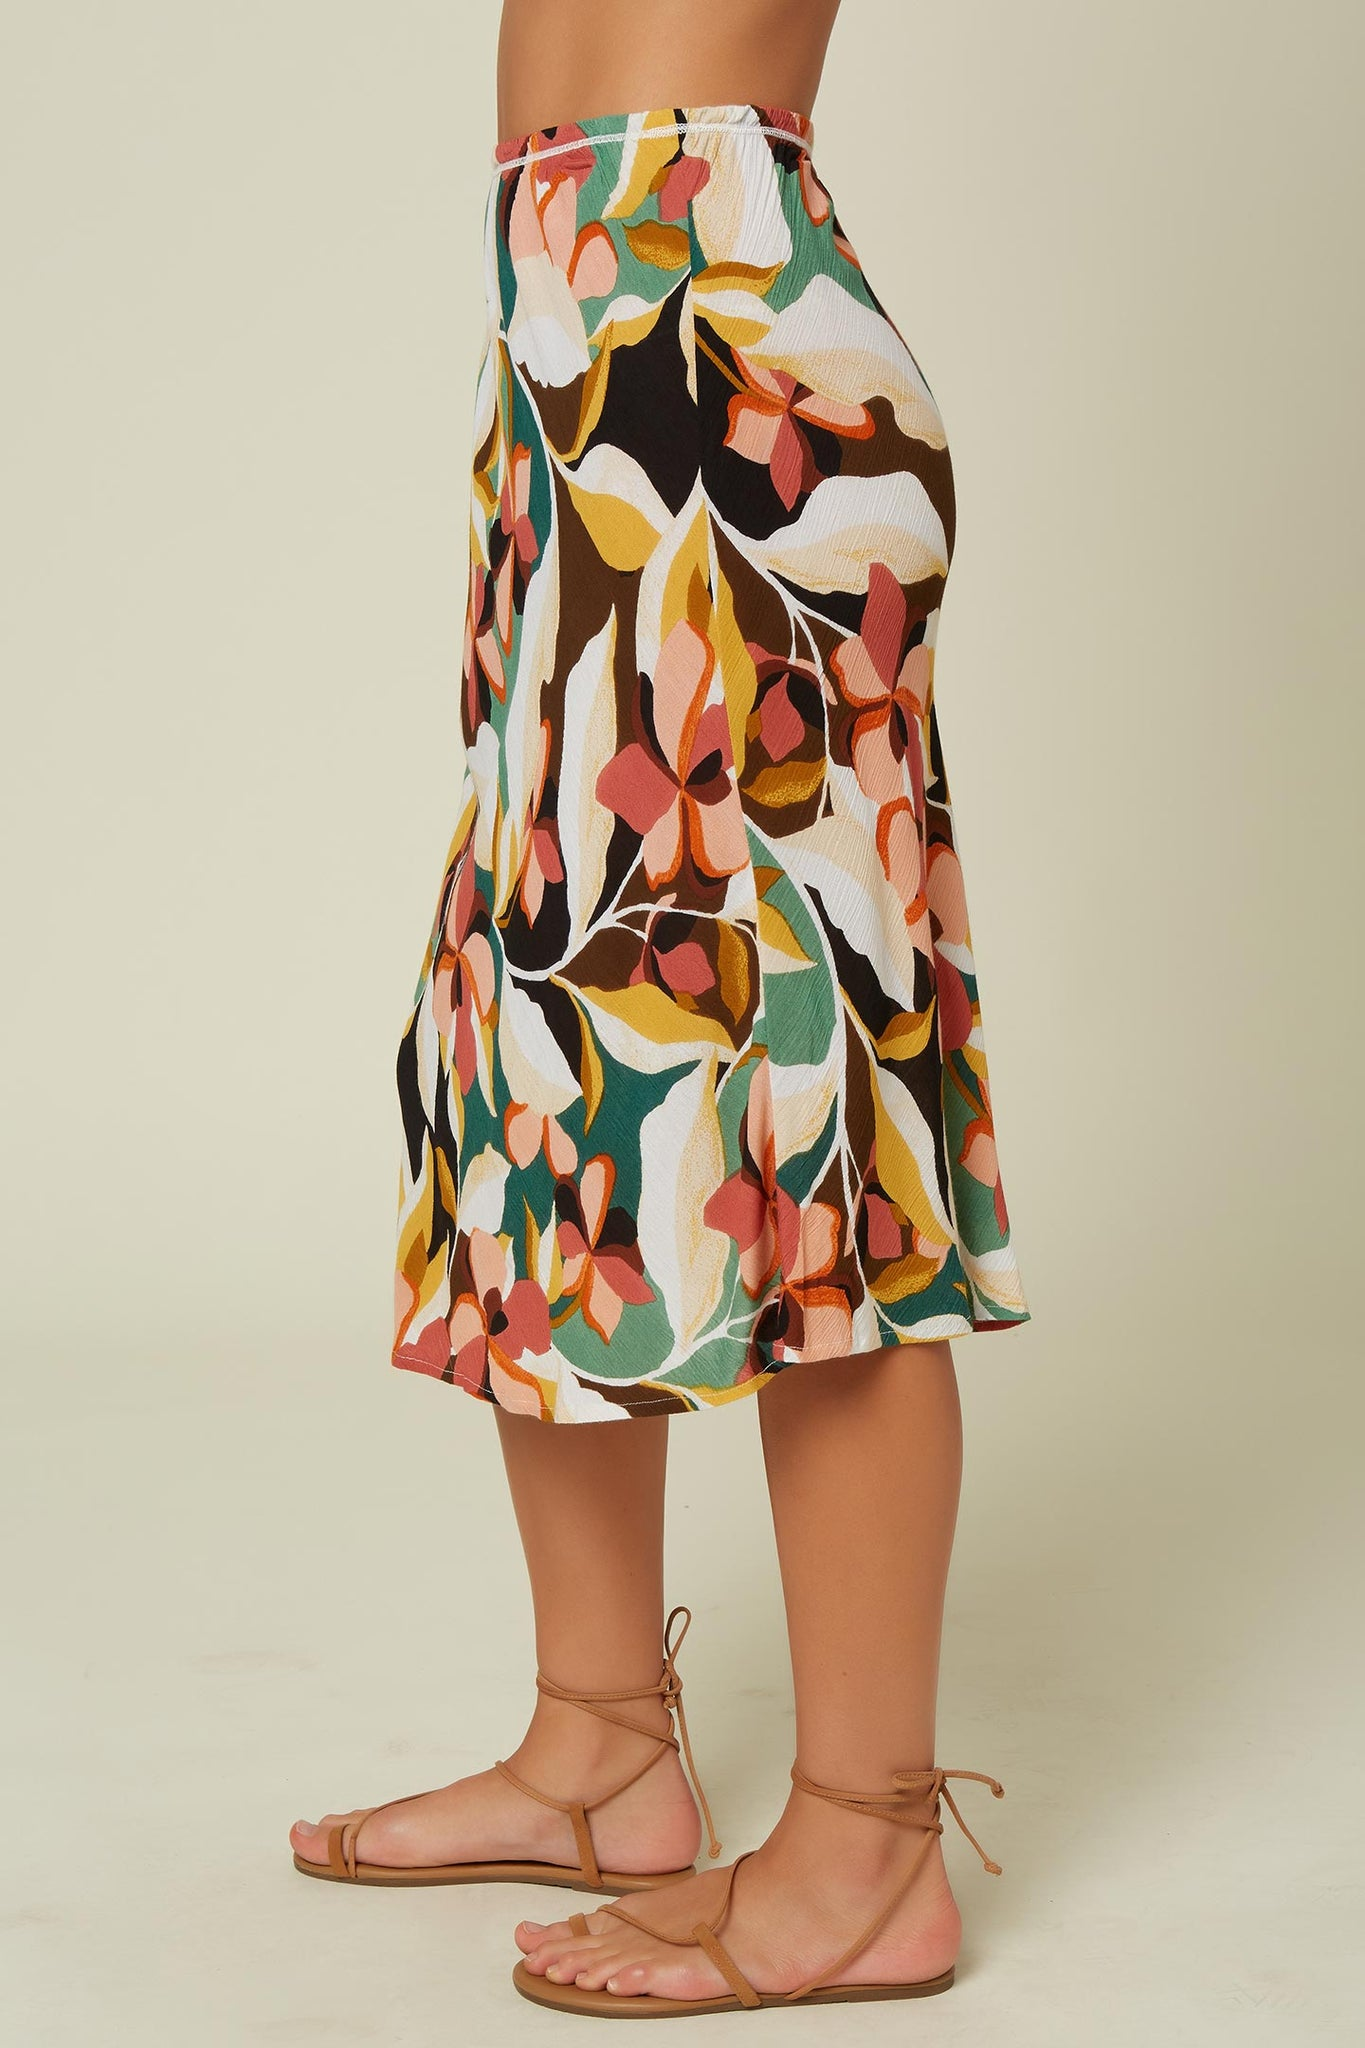 Hayek Skirt - Multi Colored | O'Neill